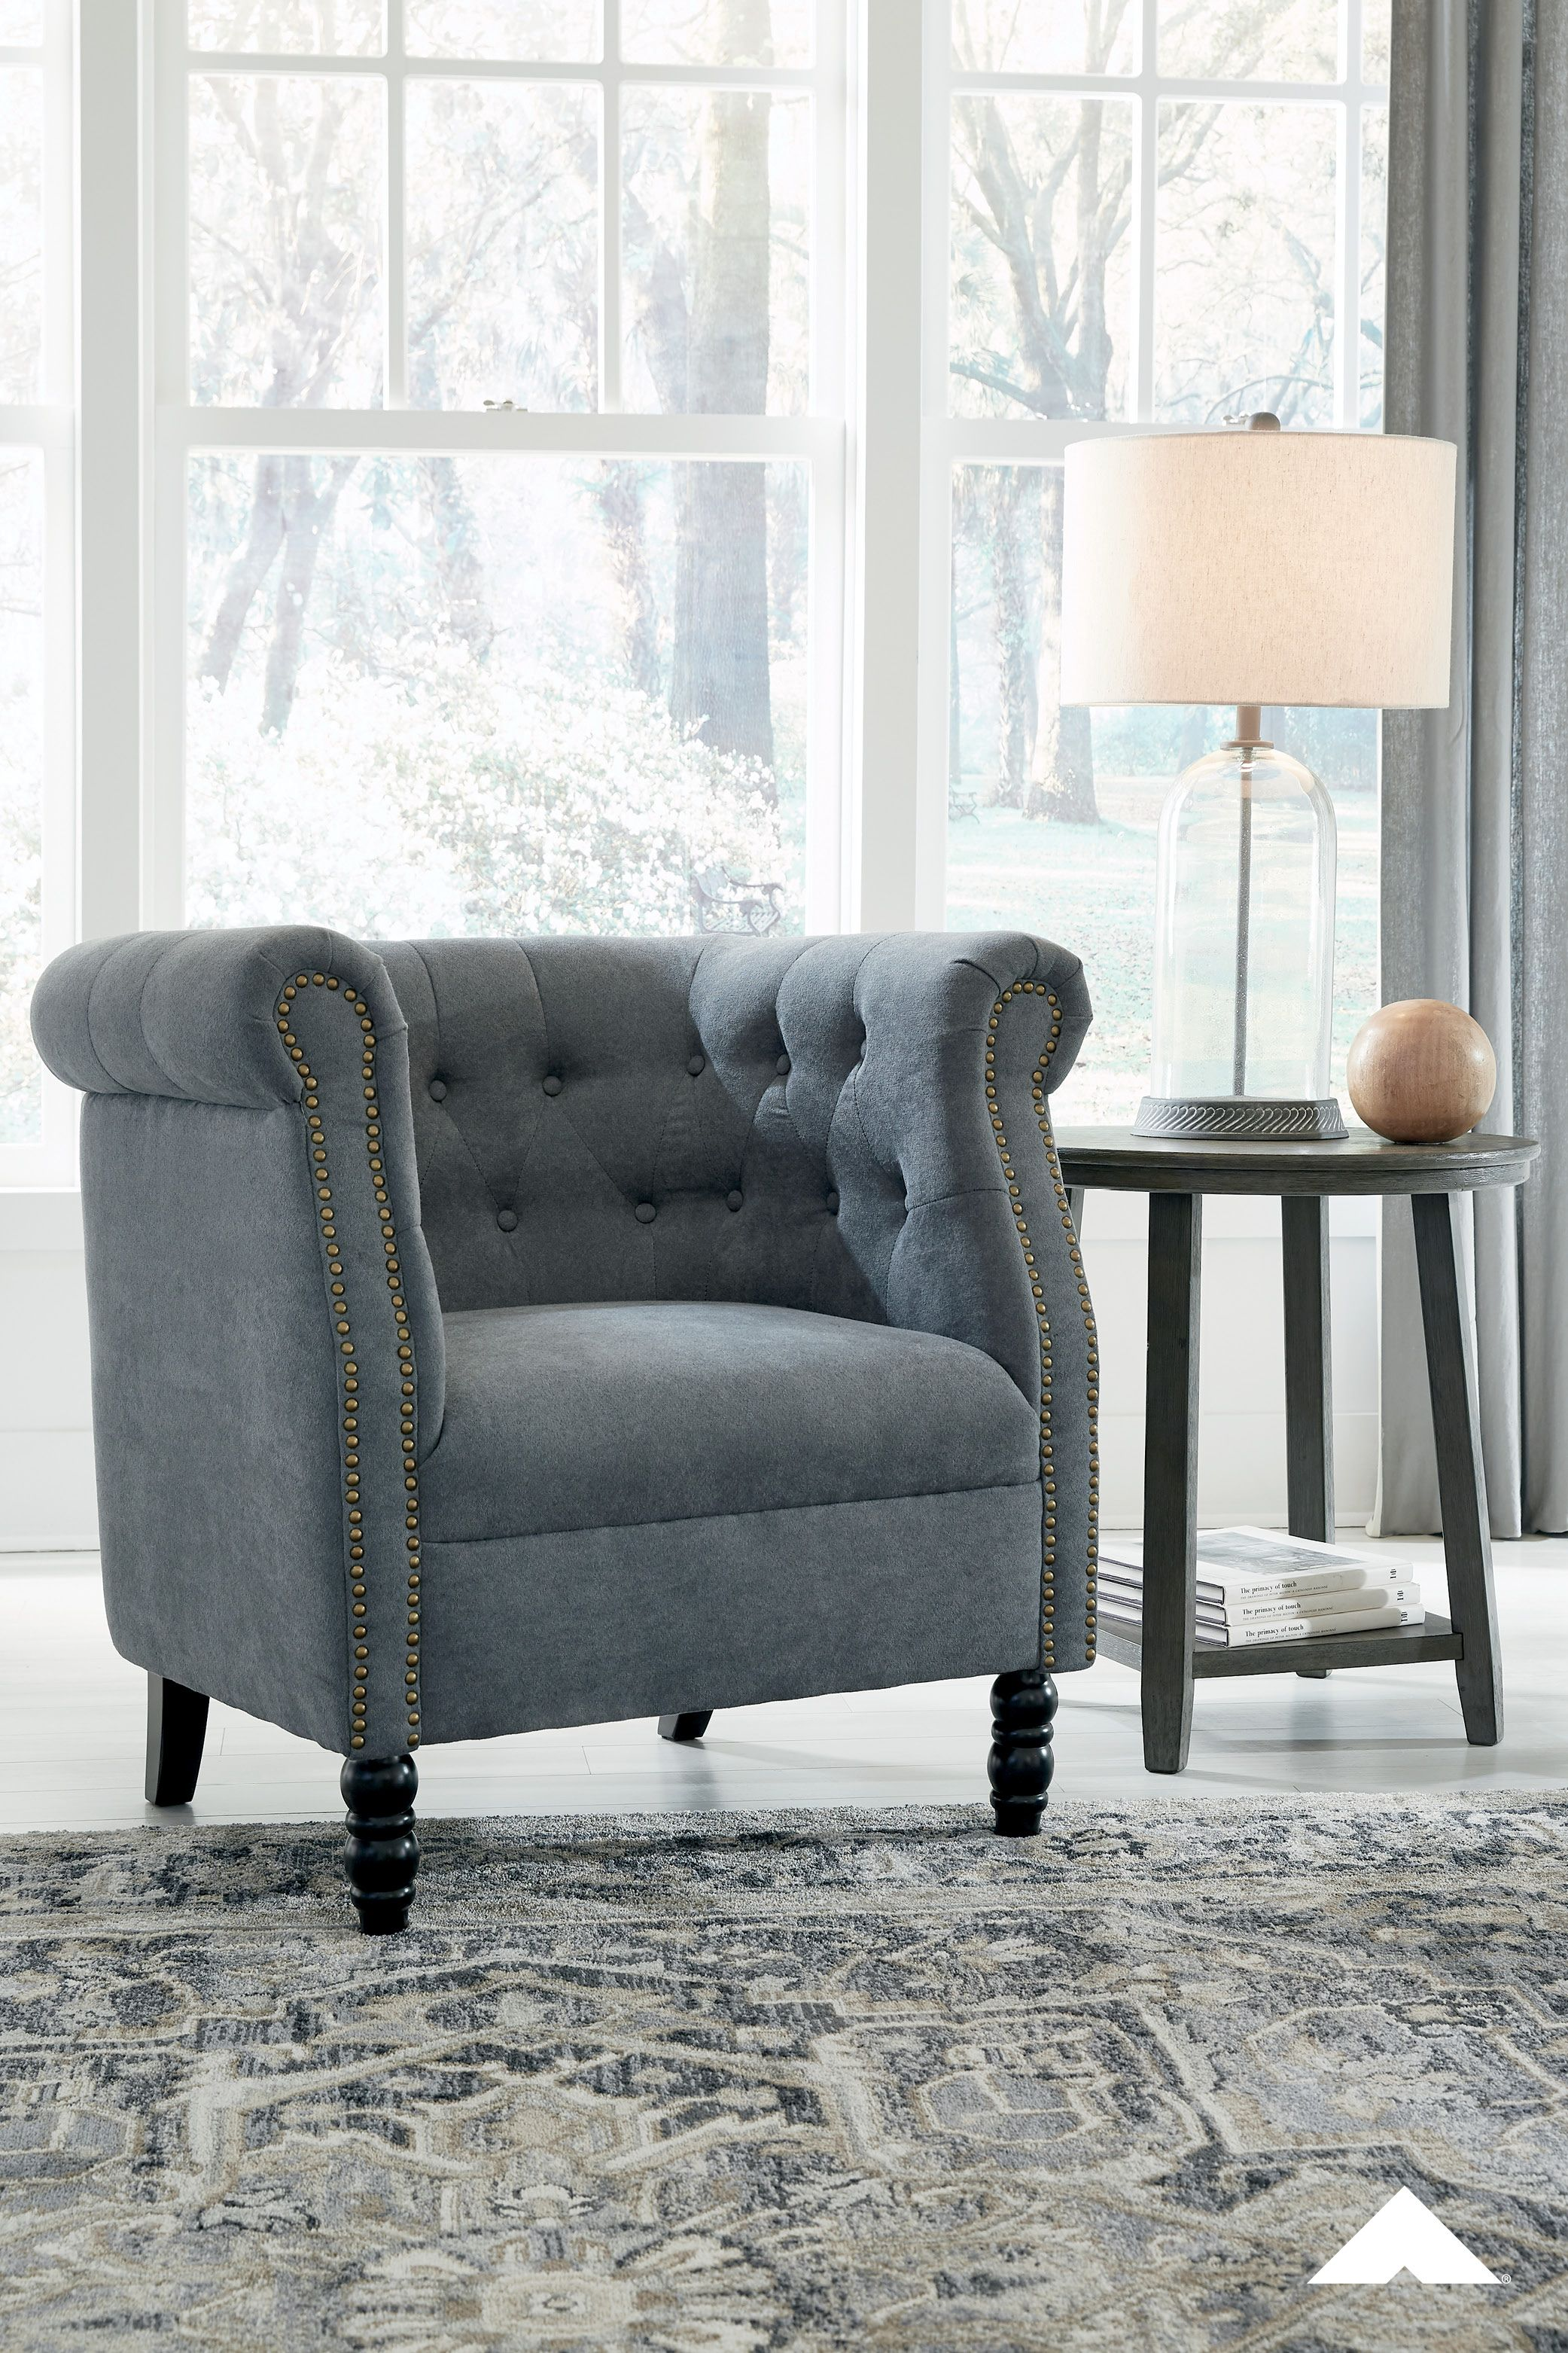 Jacquelyne Slate Blue Accent Chair By Ashley Furniture Bring A European Style To Your Home With This Accent Chair The Slate Blue Color Is S In 2020 Blue Accent Chairs